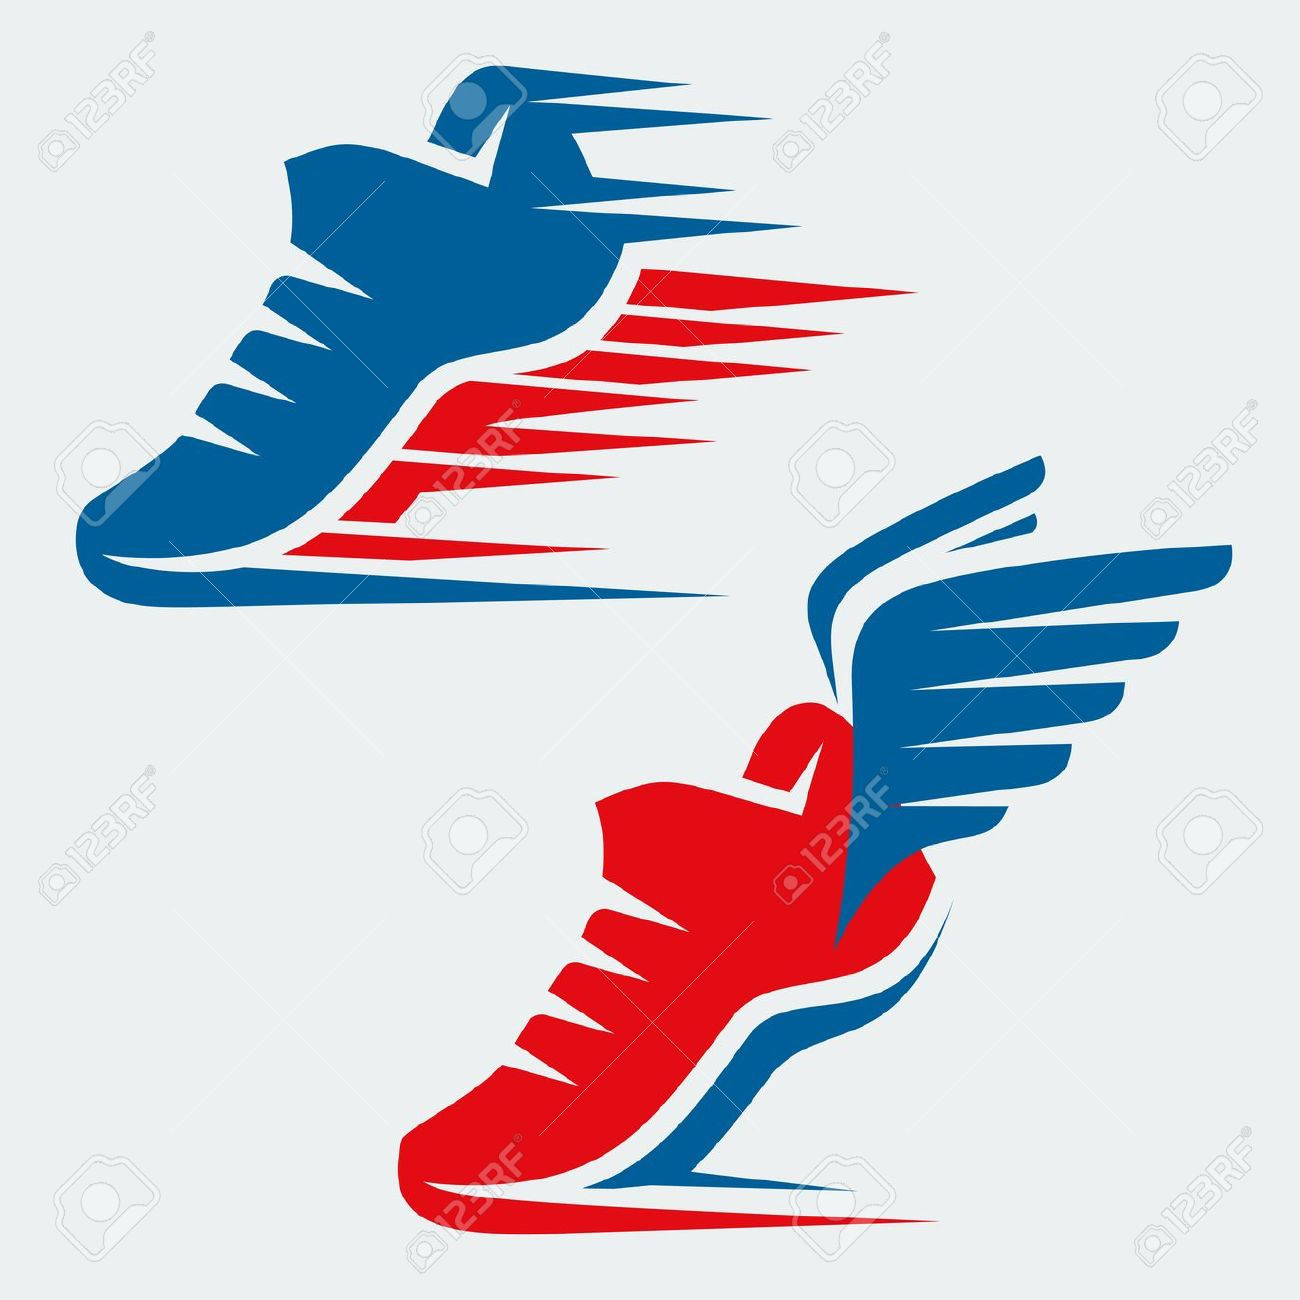 Free Download Best Running Shoes Clipart On ClipArtMag.com